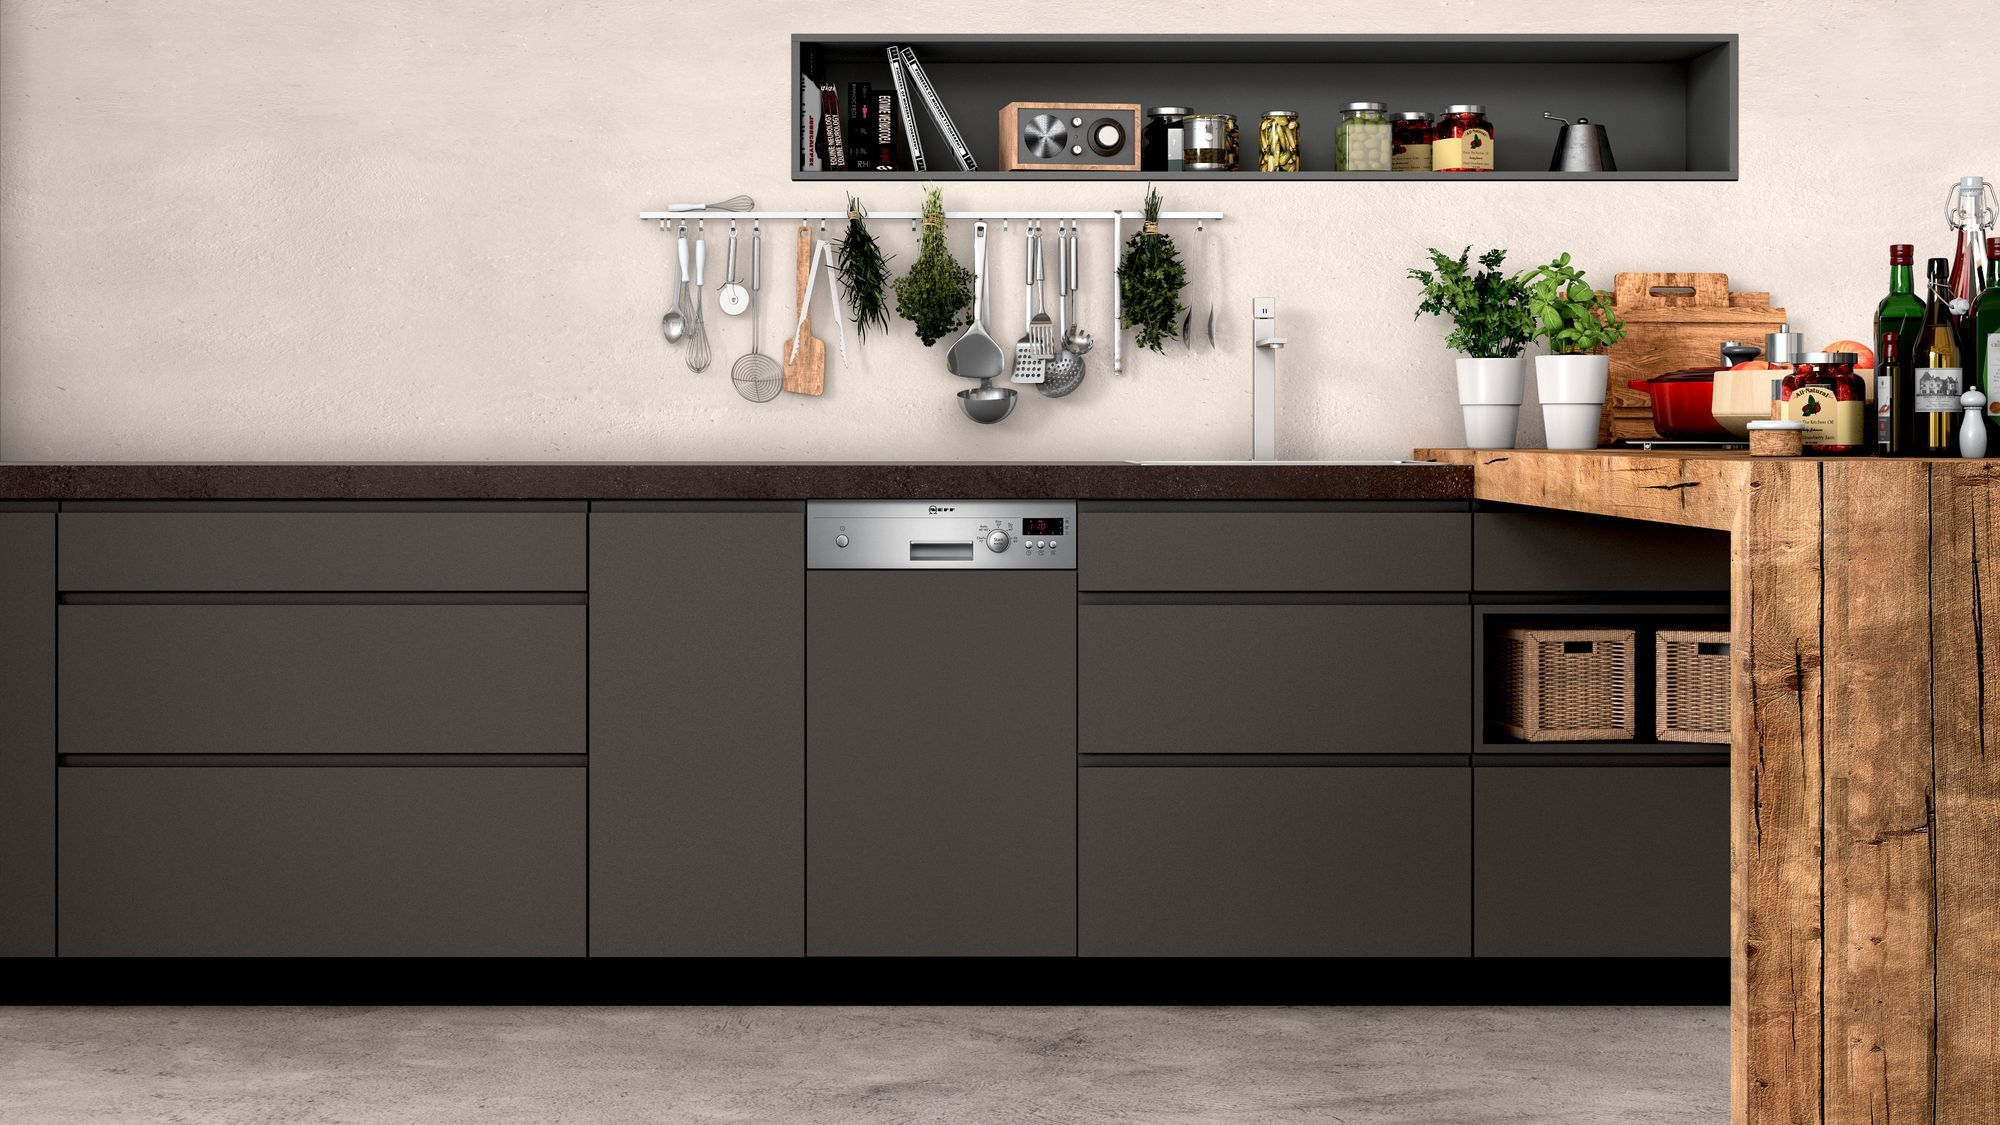 Photos 4: Neff Built-in dishwasher cm. 45 - 9 partial integrated cover S481C50S3E